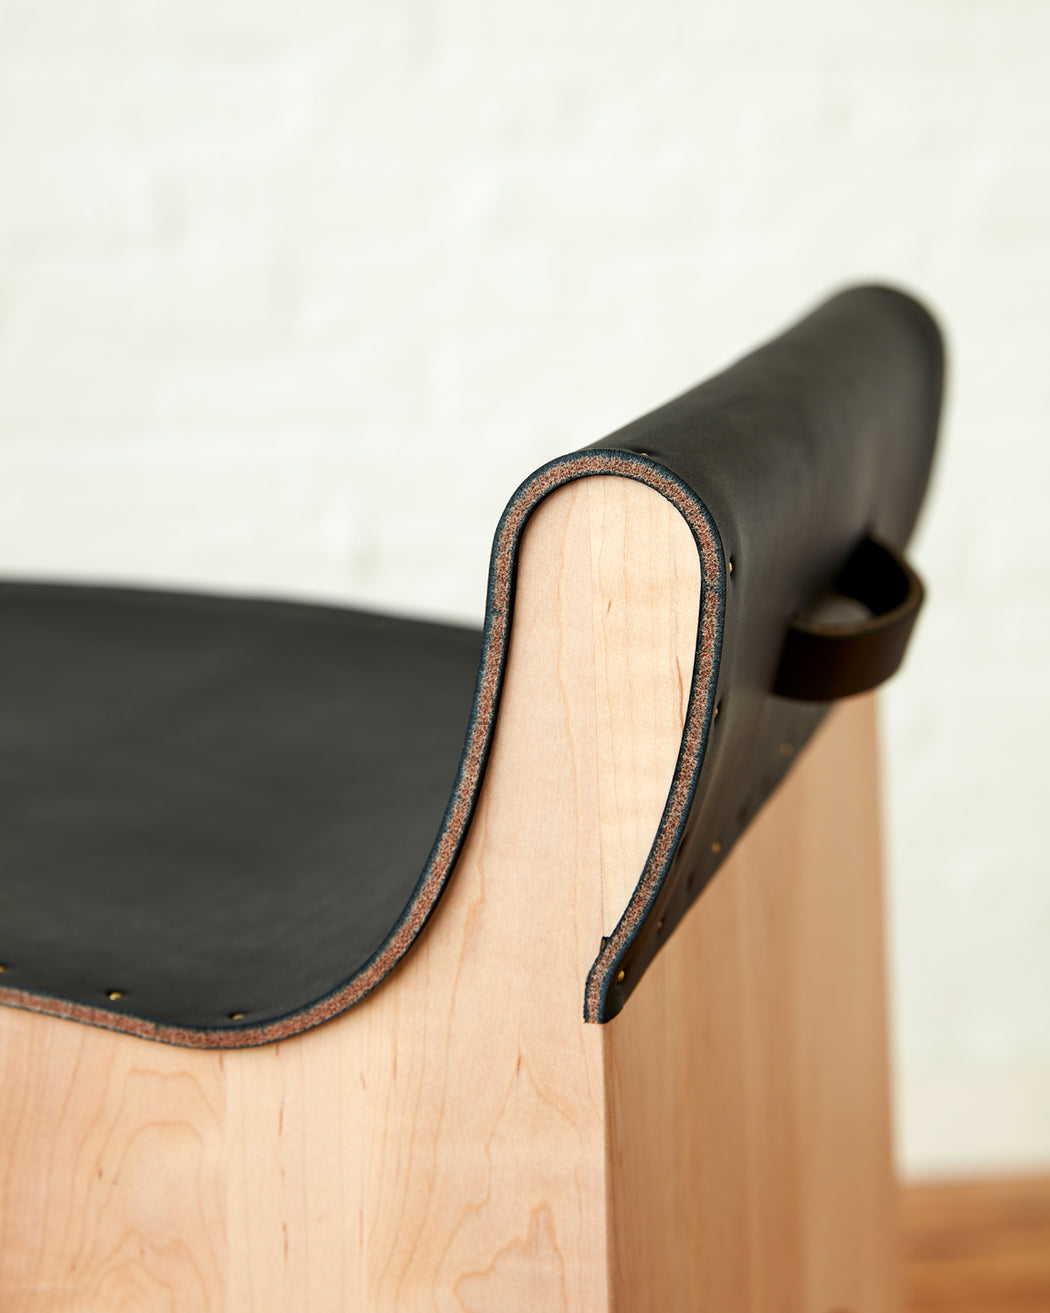 Jack Leather and Wood Stool - Black